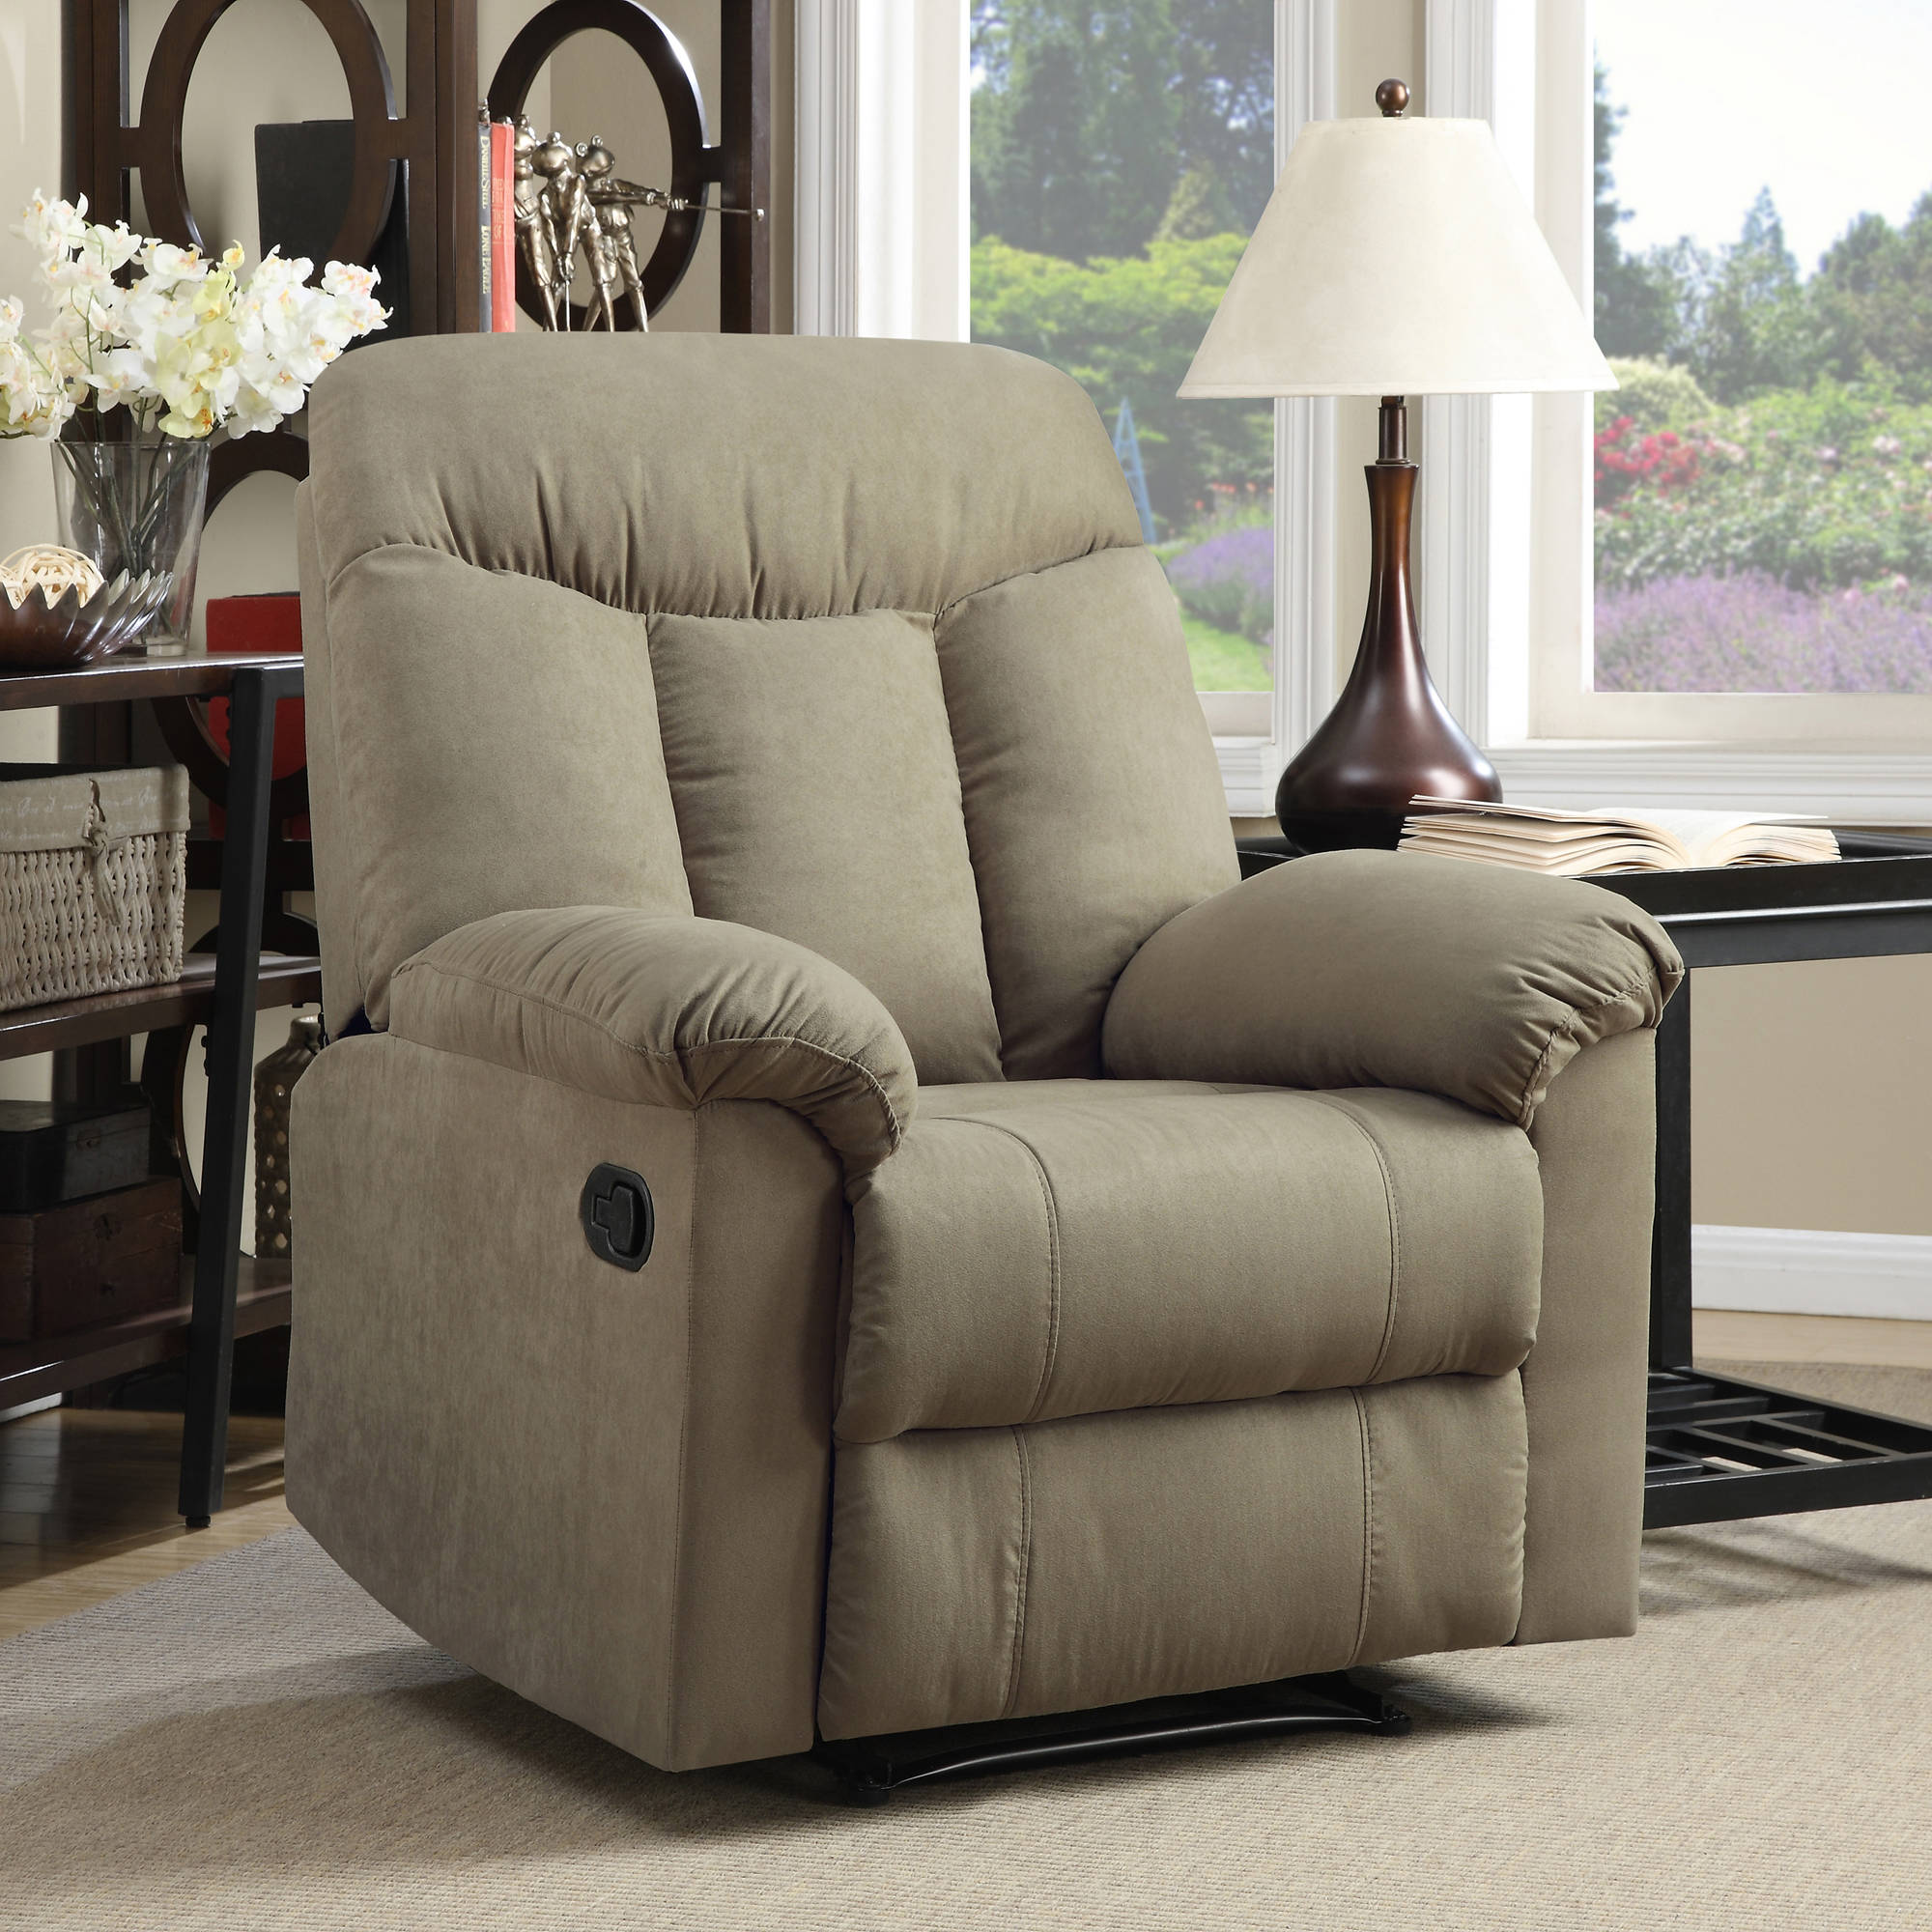 ProLounger Wall Hugger Microfiber Recliner, Multiple Colors